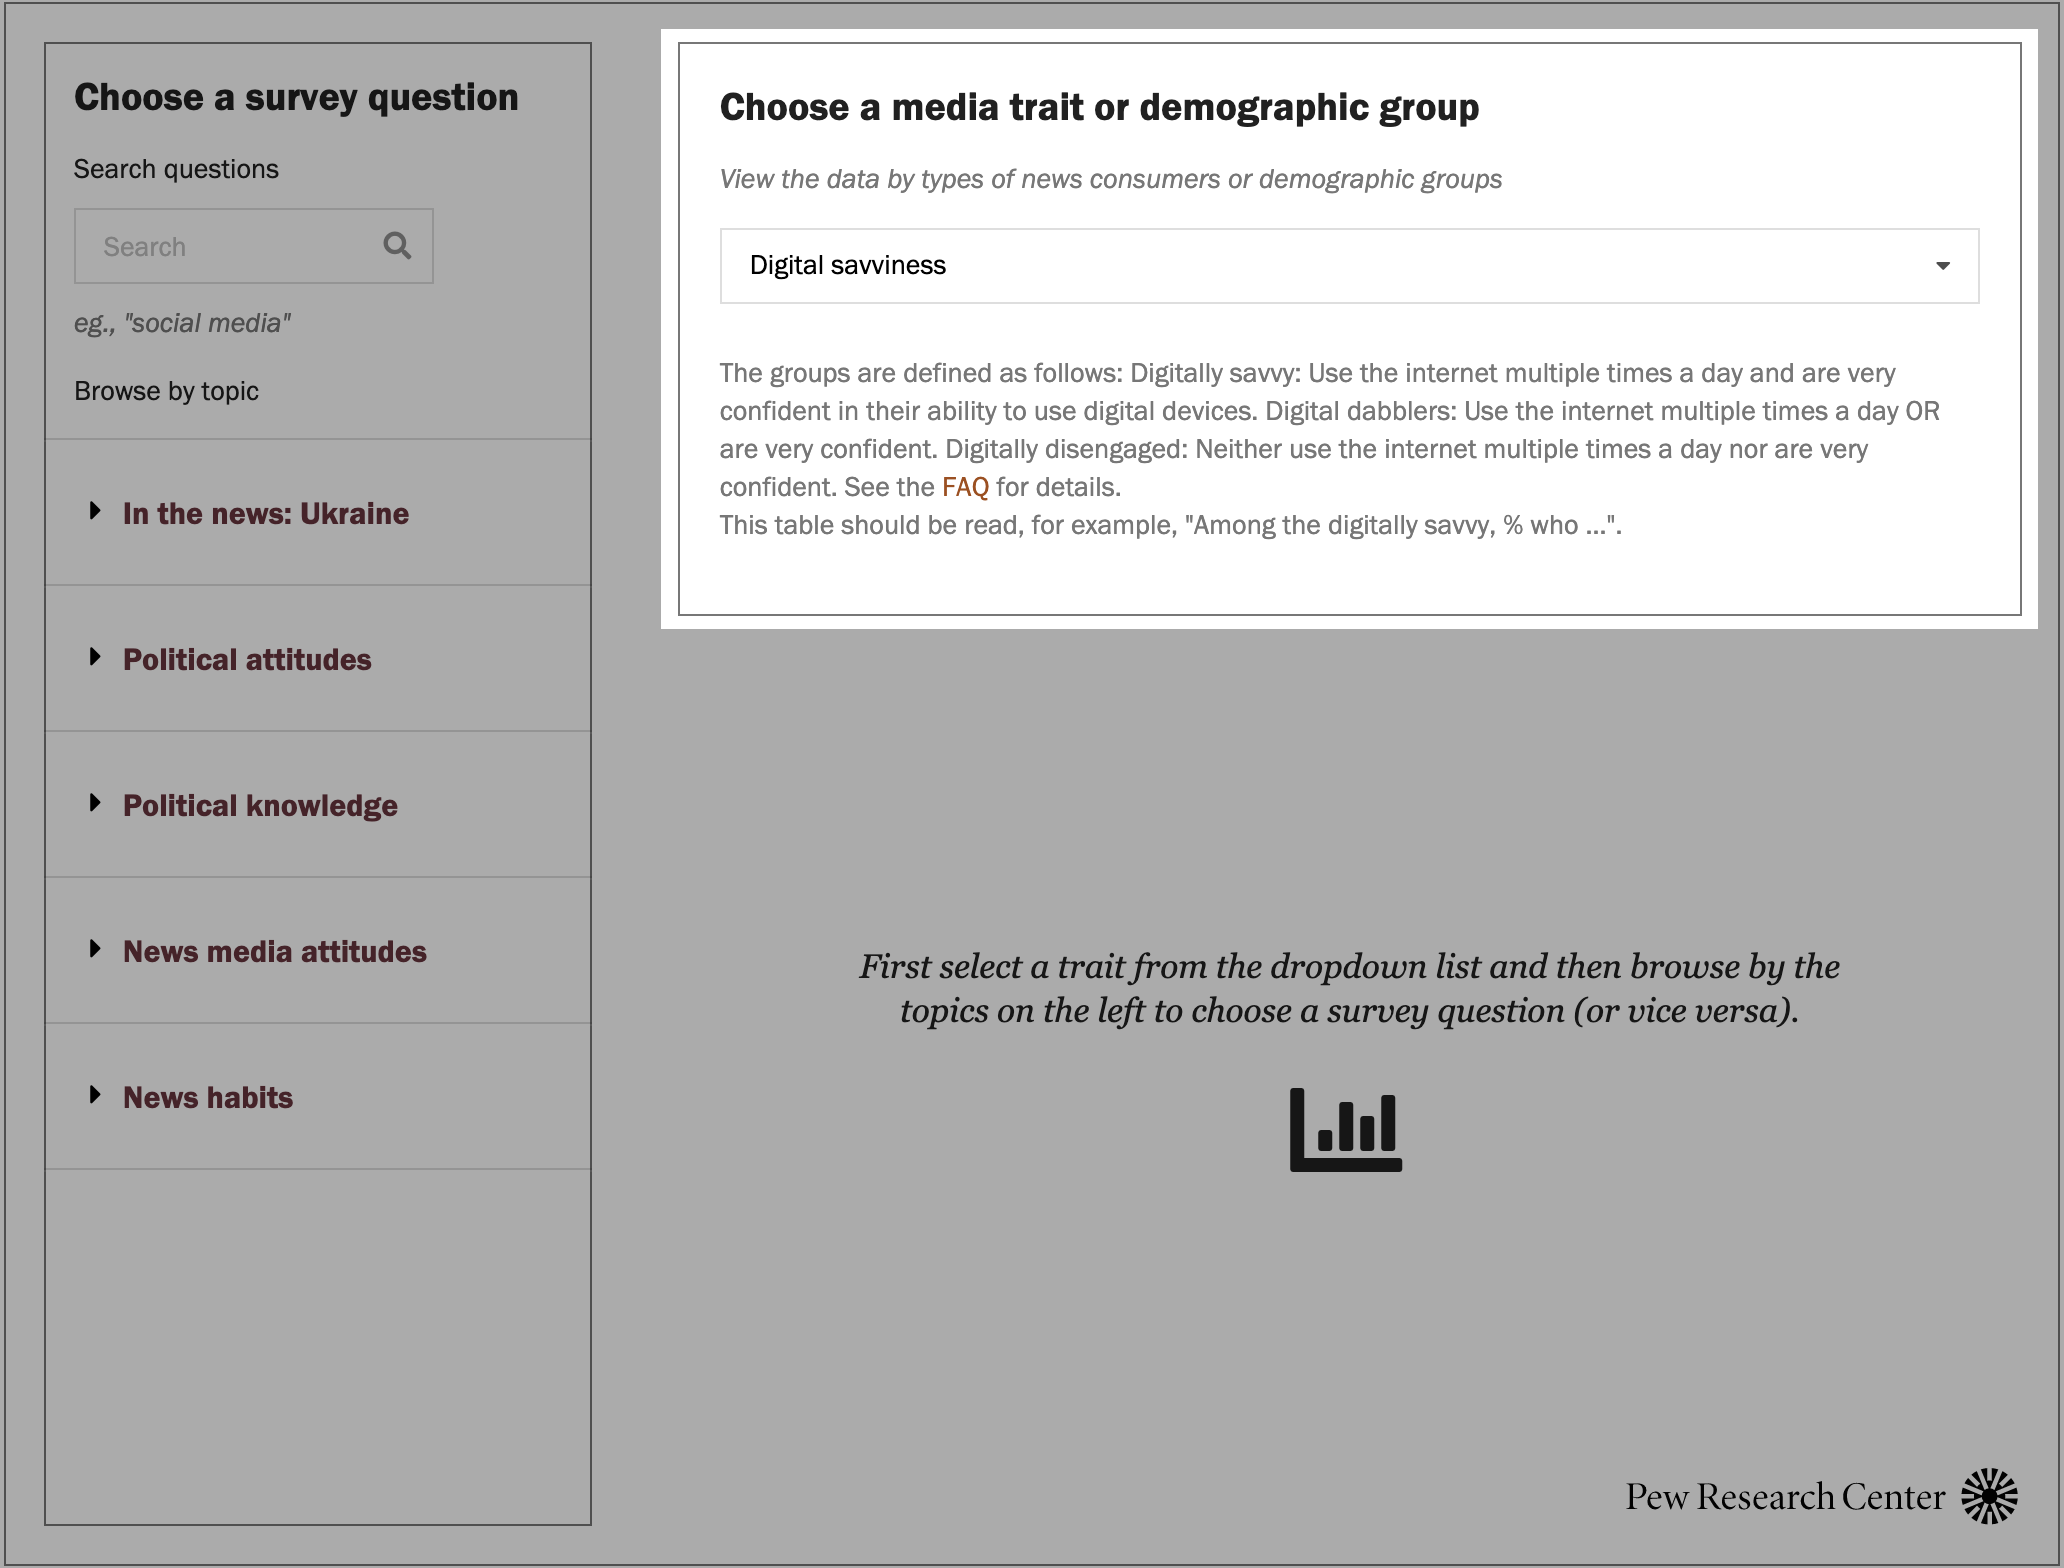 Step 1: Select a media trait or demographic group.